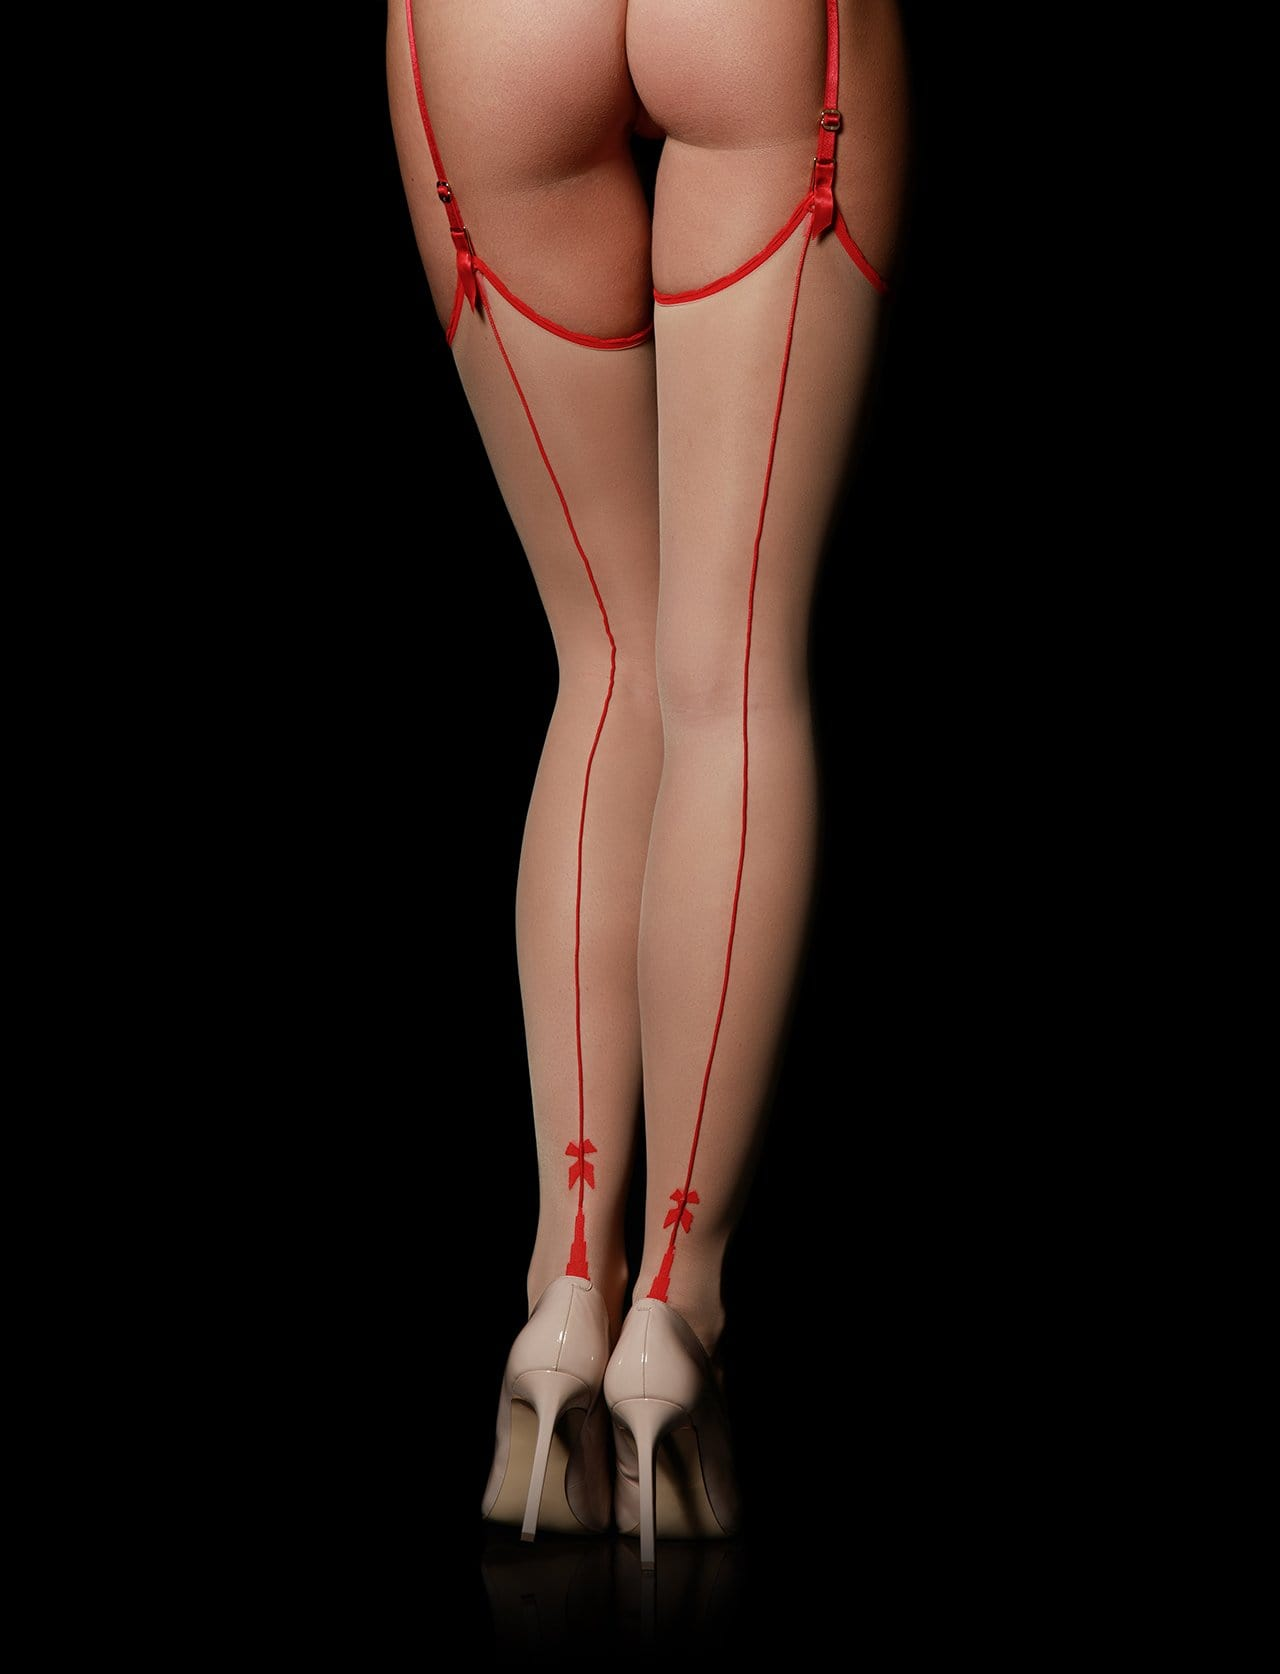 Red Bowties Suspender Stockings